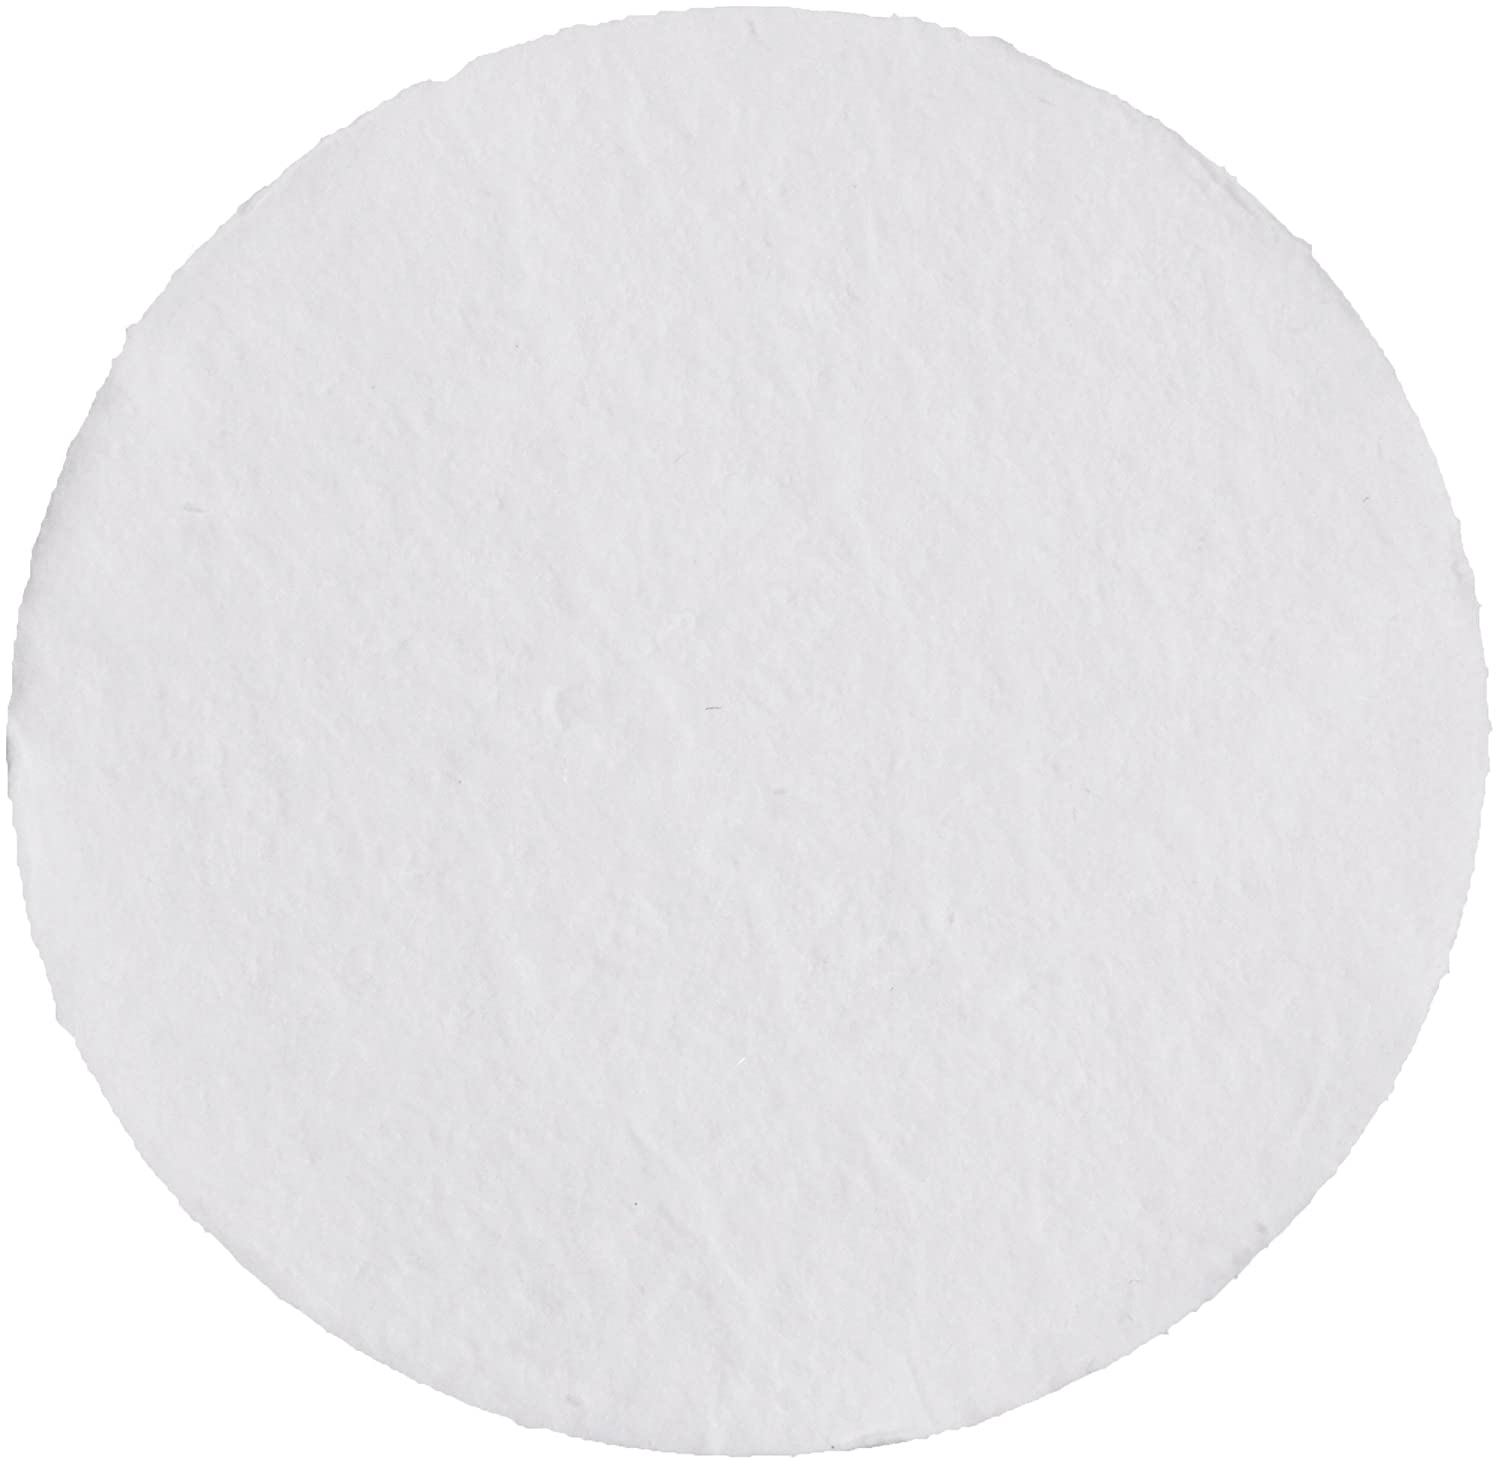 B00394F9PU Whatman 1004-110 Quantitative Filter Paper Circles, 20-25 Micron, 3.7 s/100mL/sq inch Flow Rate, Grade 4, 110mm Diameter (Pack of 100) 717waDMSgEL